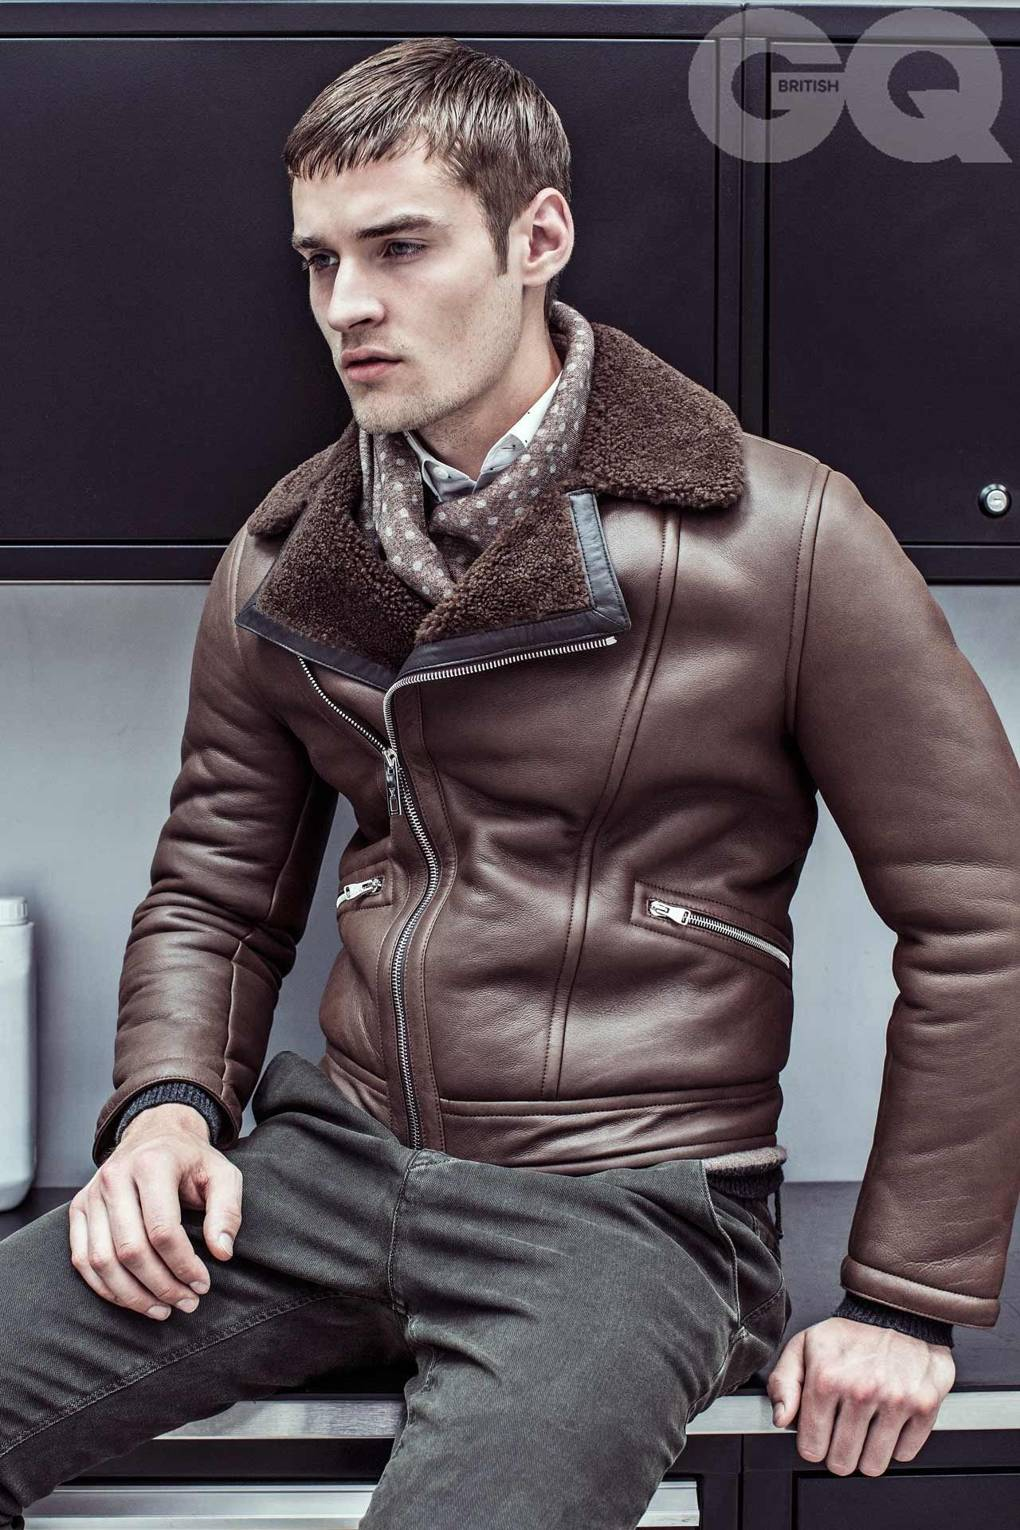 d333d35fa52 Men s leather jackets  how to look good in leather